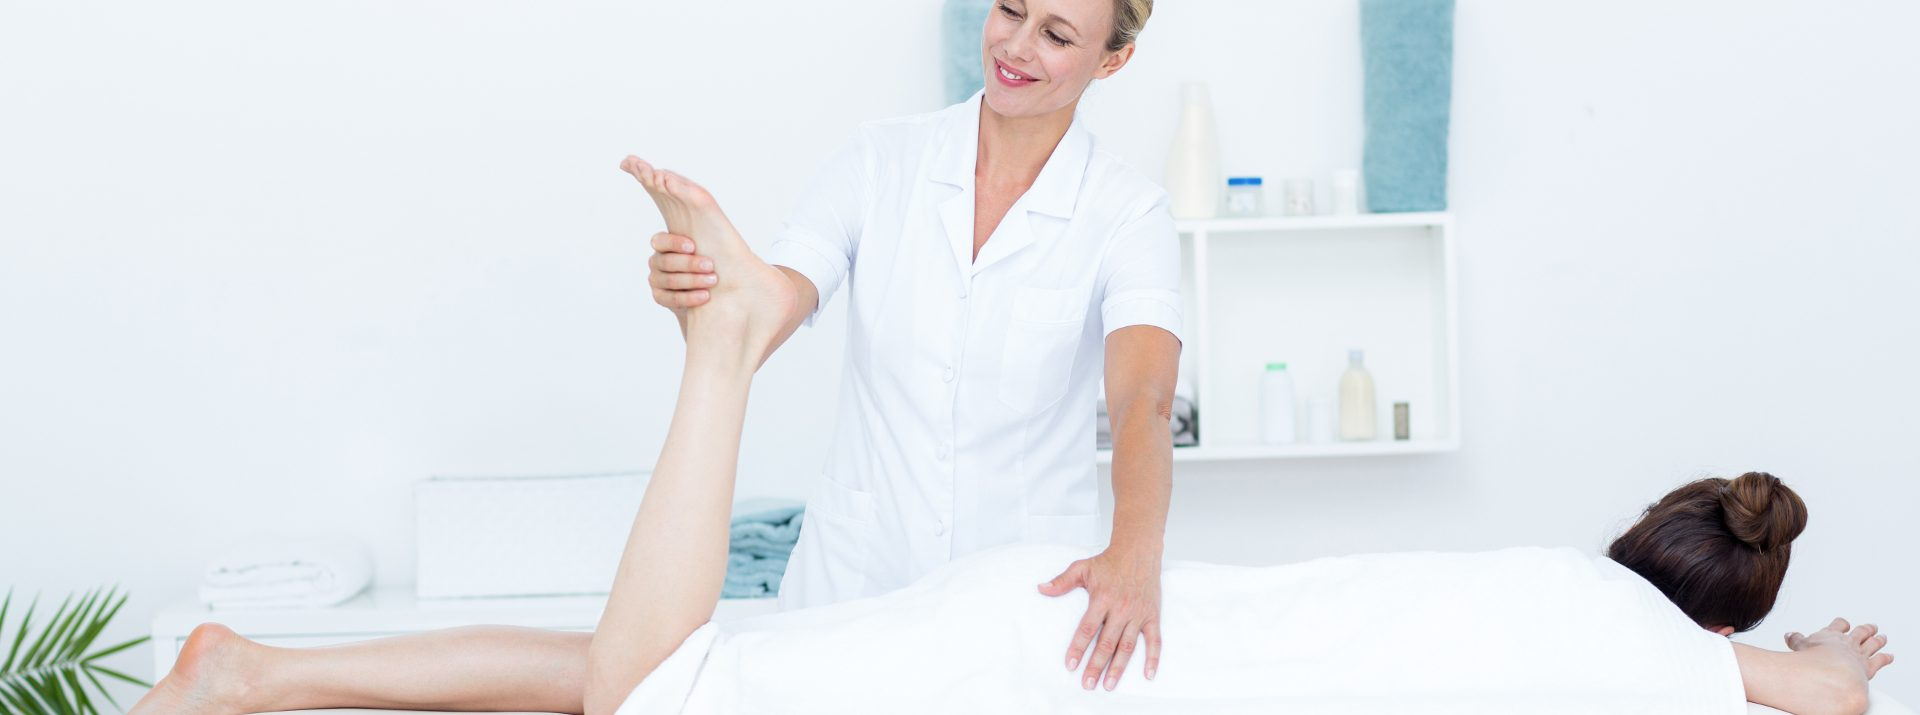 We offer highly